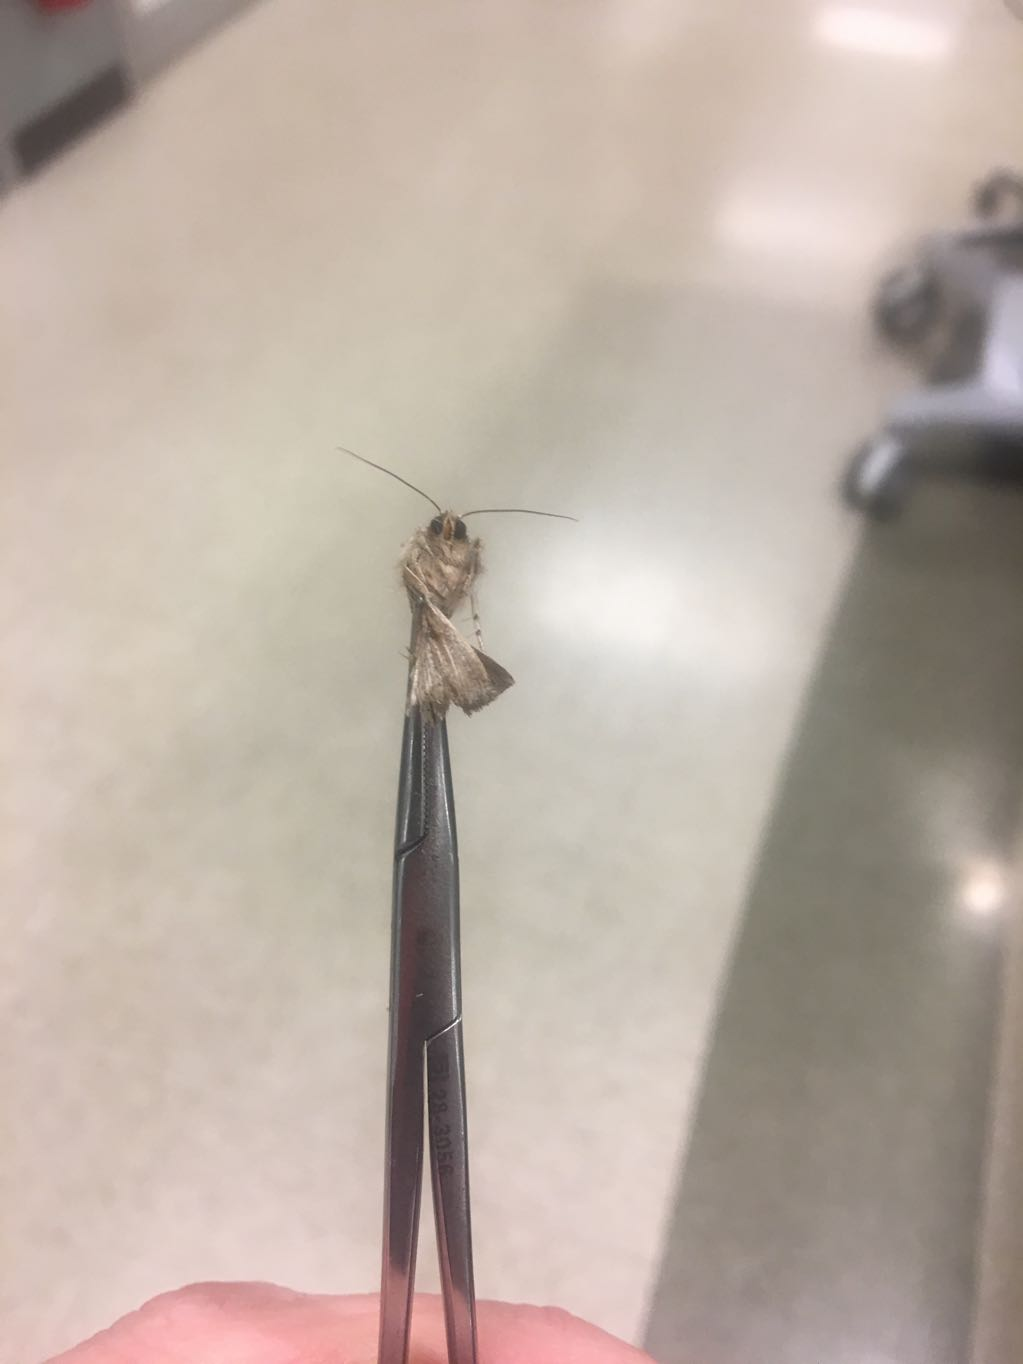 Moth removed from ear